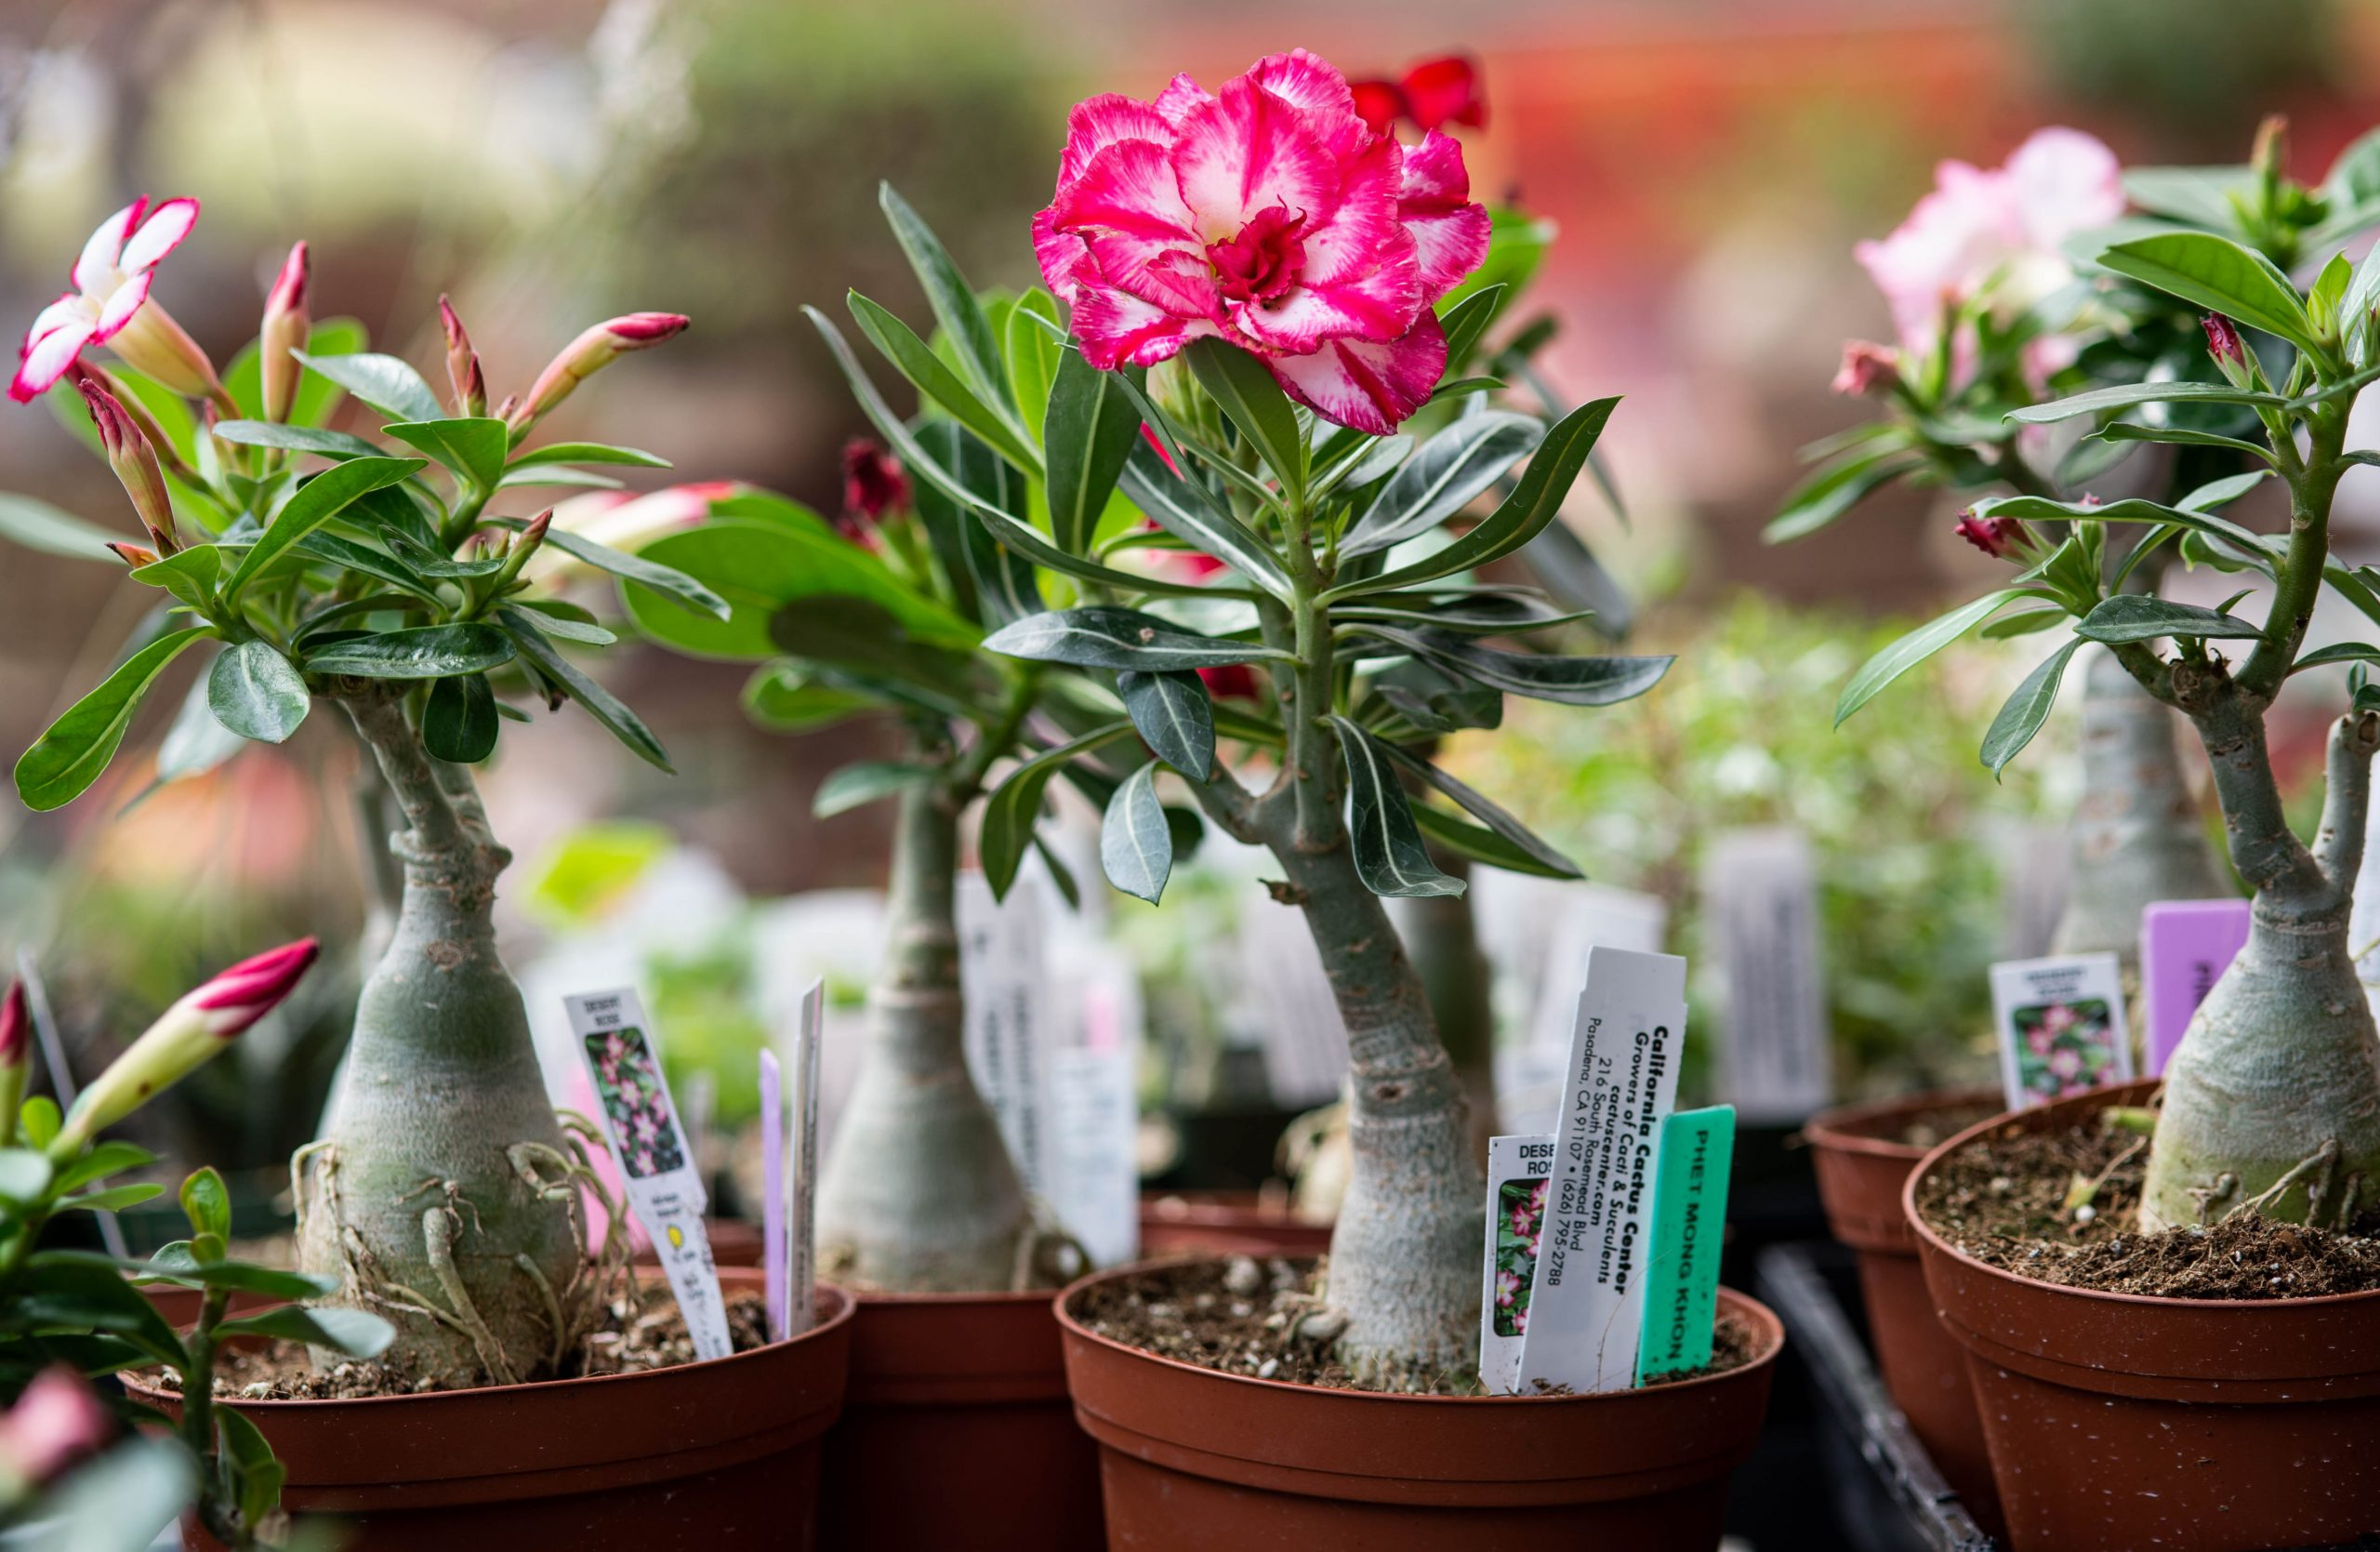 Adenium Plant – Everything You Need to Know About this Tiny Plant